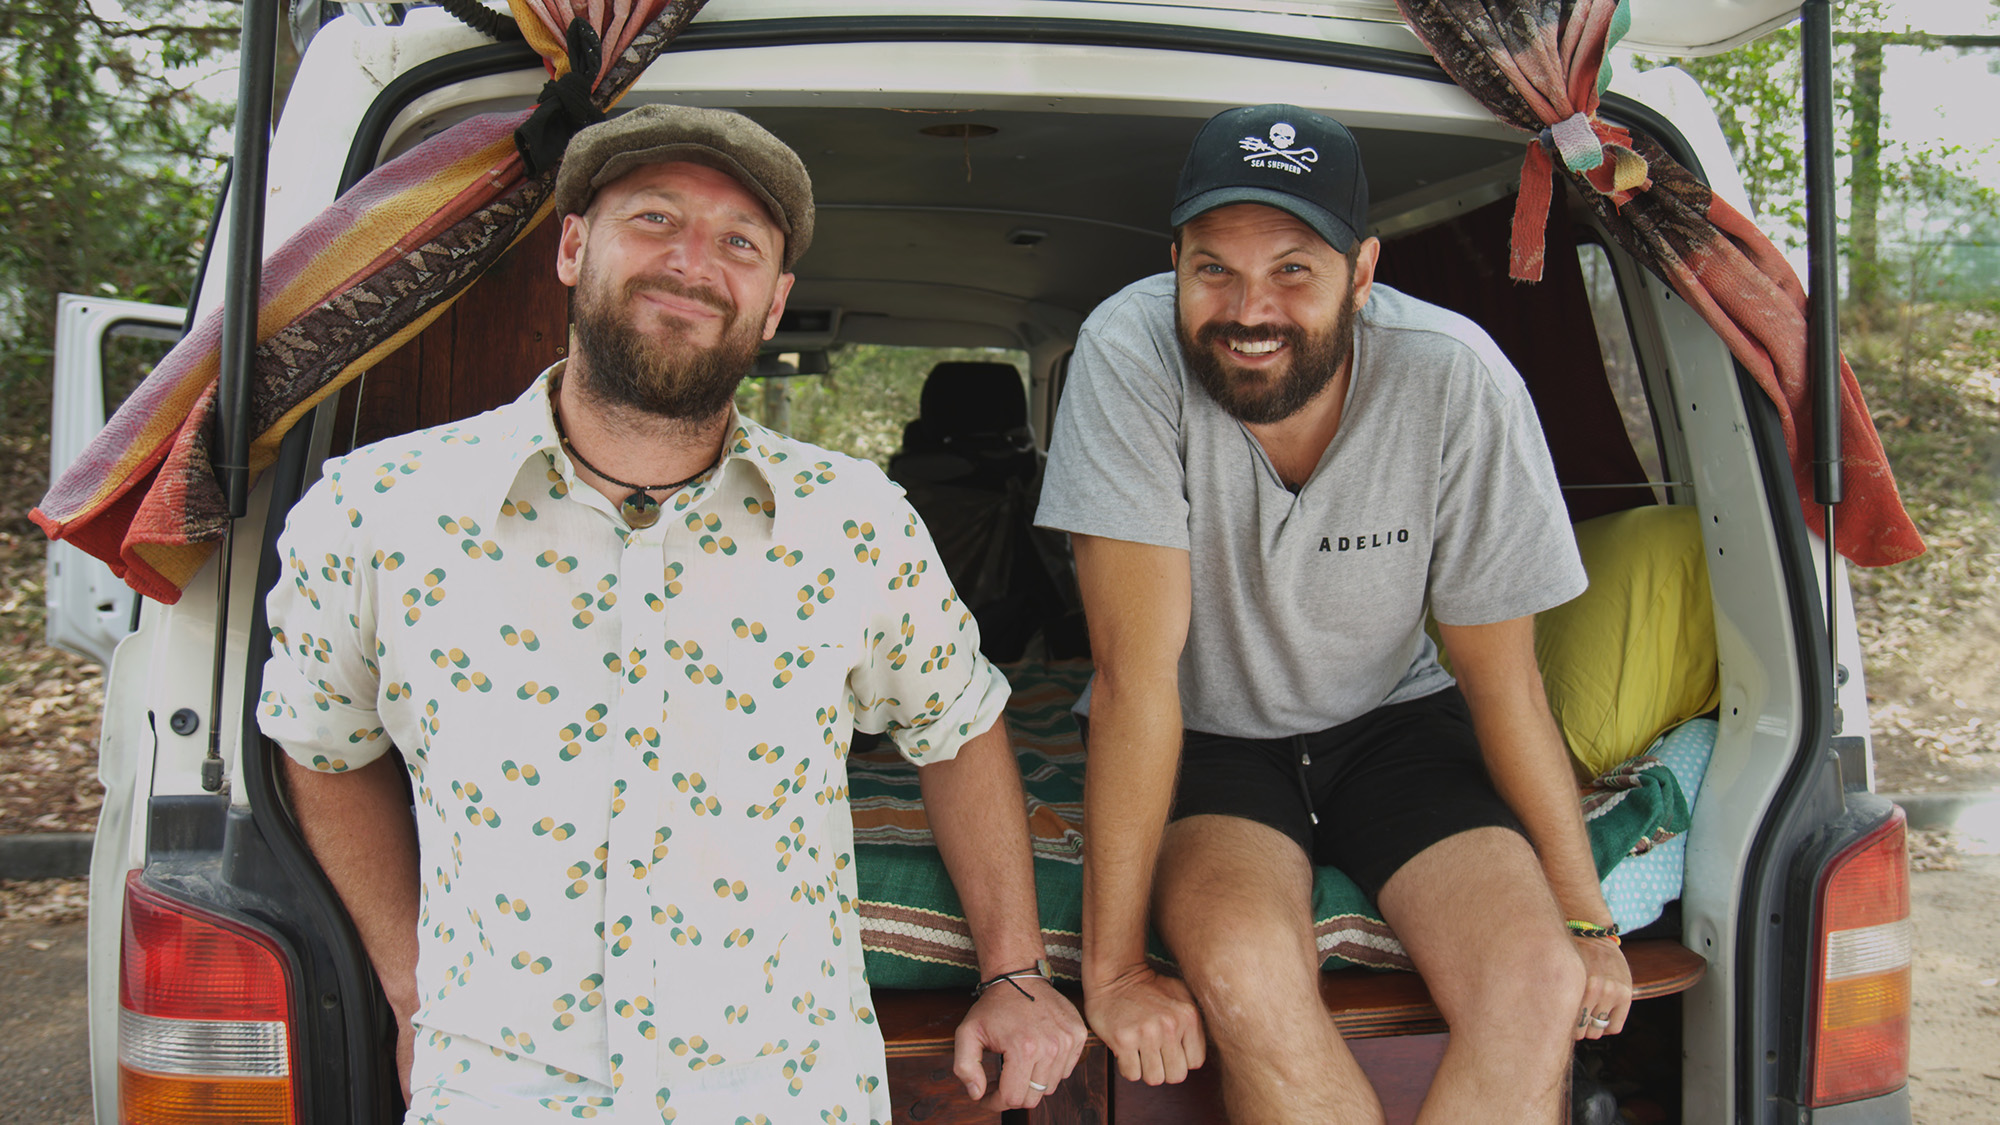 Jonny Dustow and Jared Campbell, founders of  @vanlifediaries  | Photo by J.R. Switchgrass